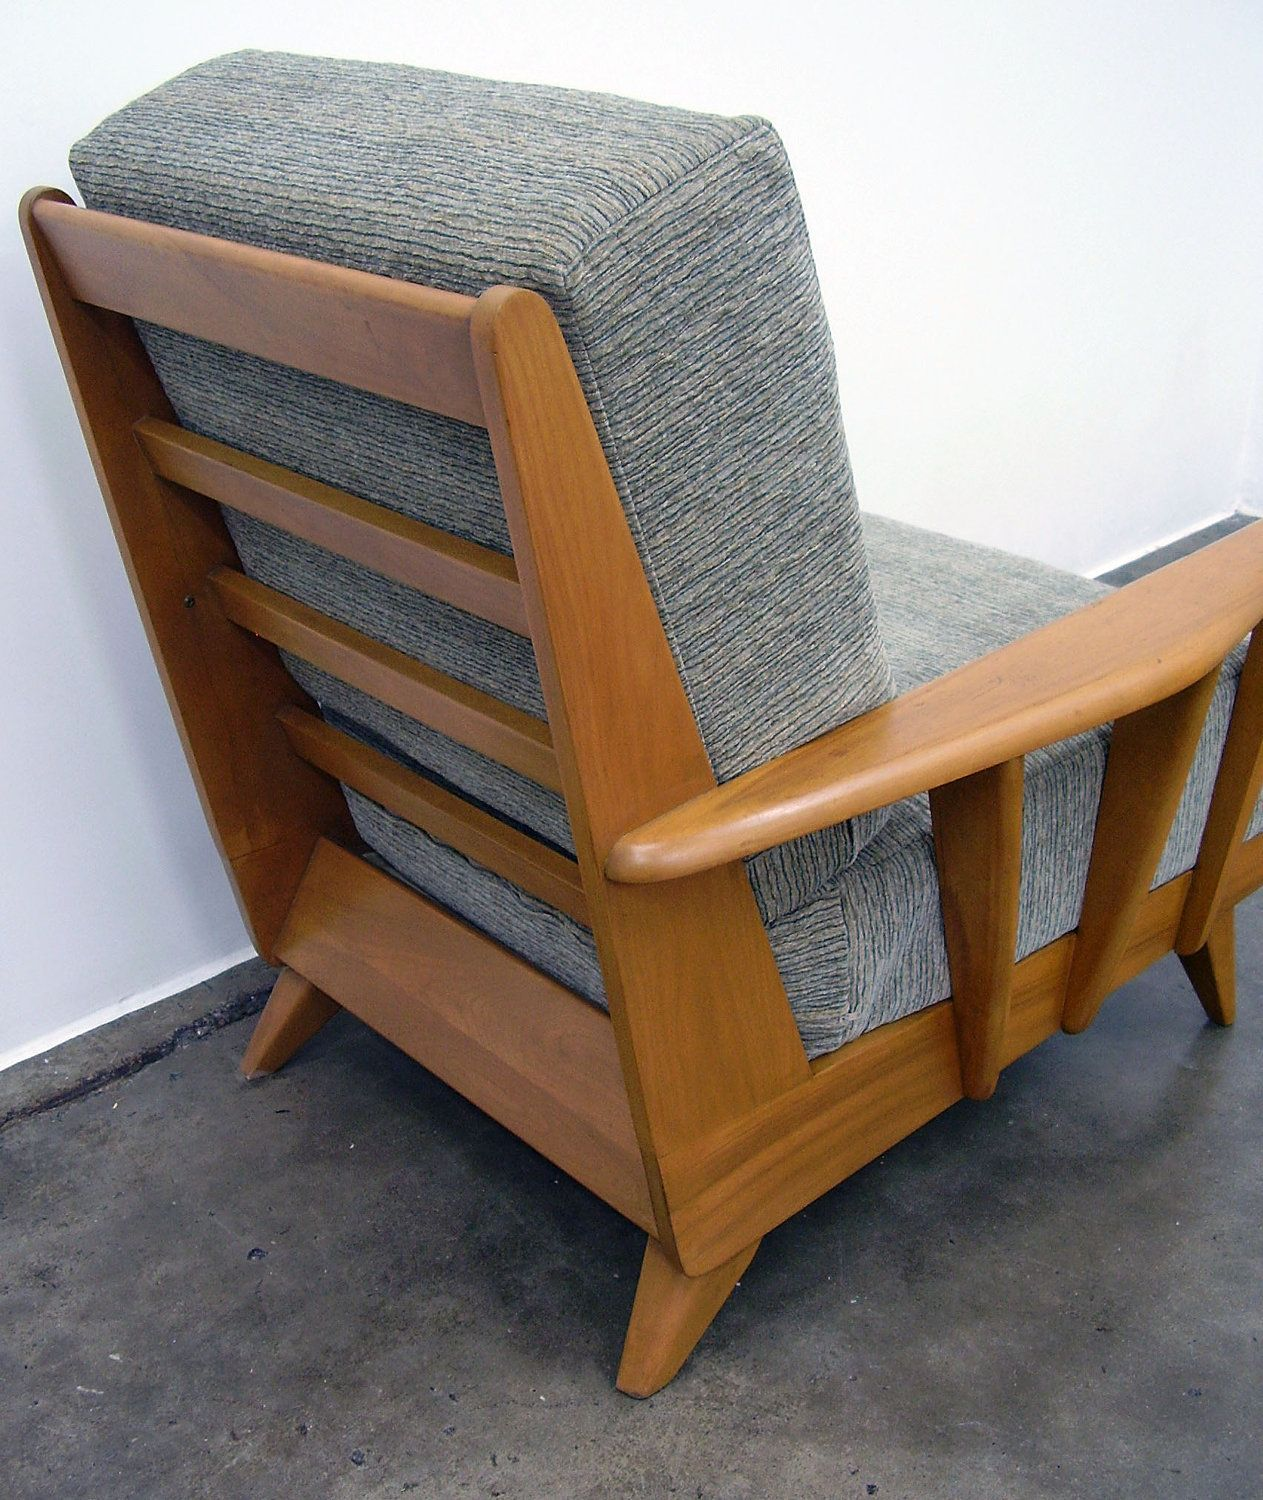 Early American Chair Styles Clear Rail Style Chairs From The 50 S Google Search 1940